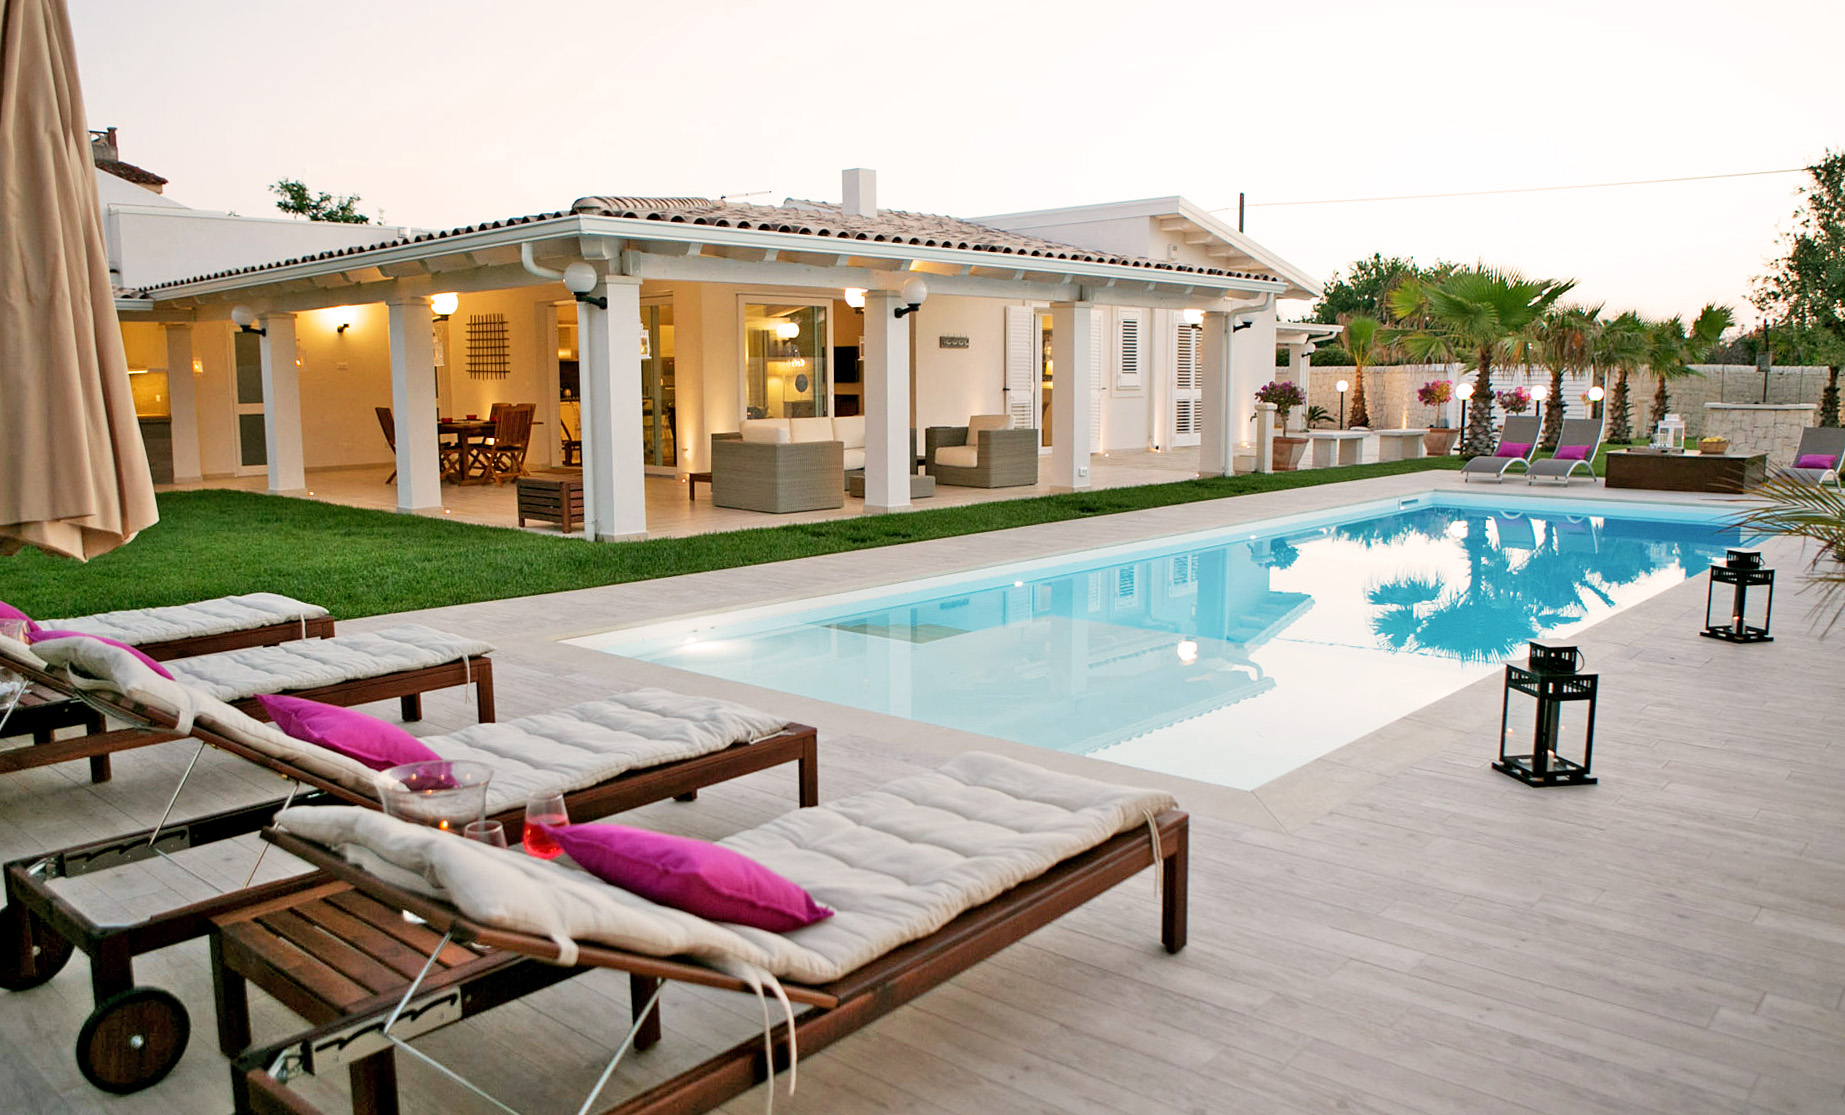 Ville delle Palme, Sicily, one of our featured Italian villas